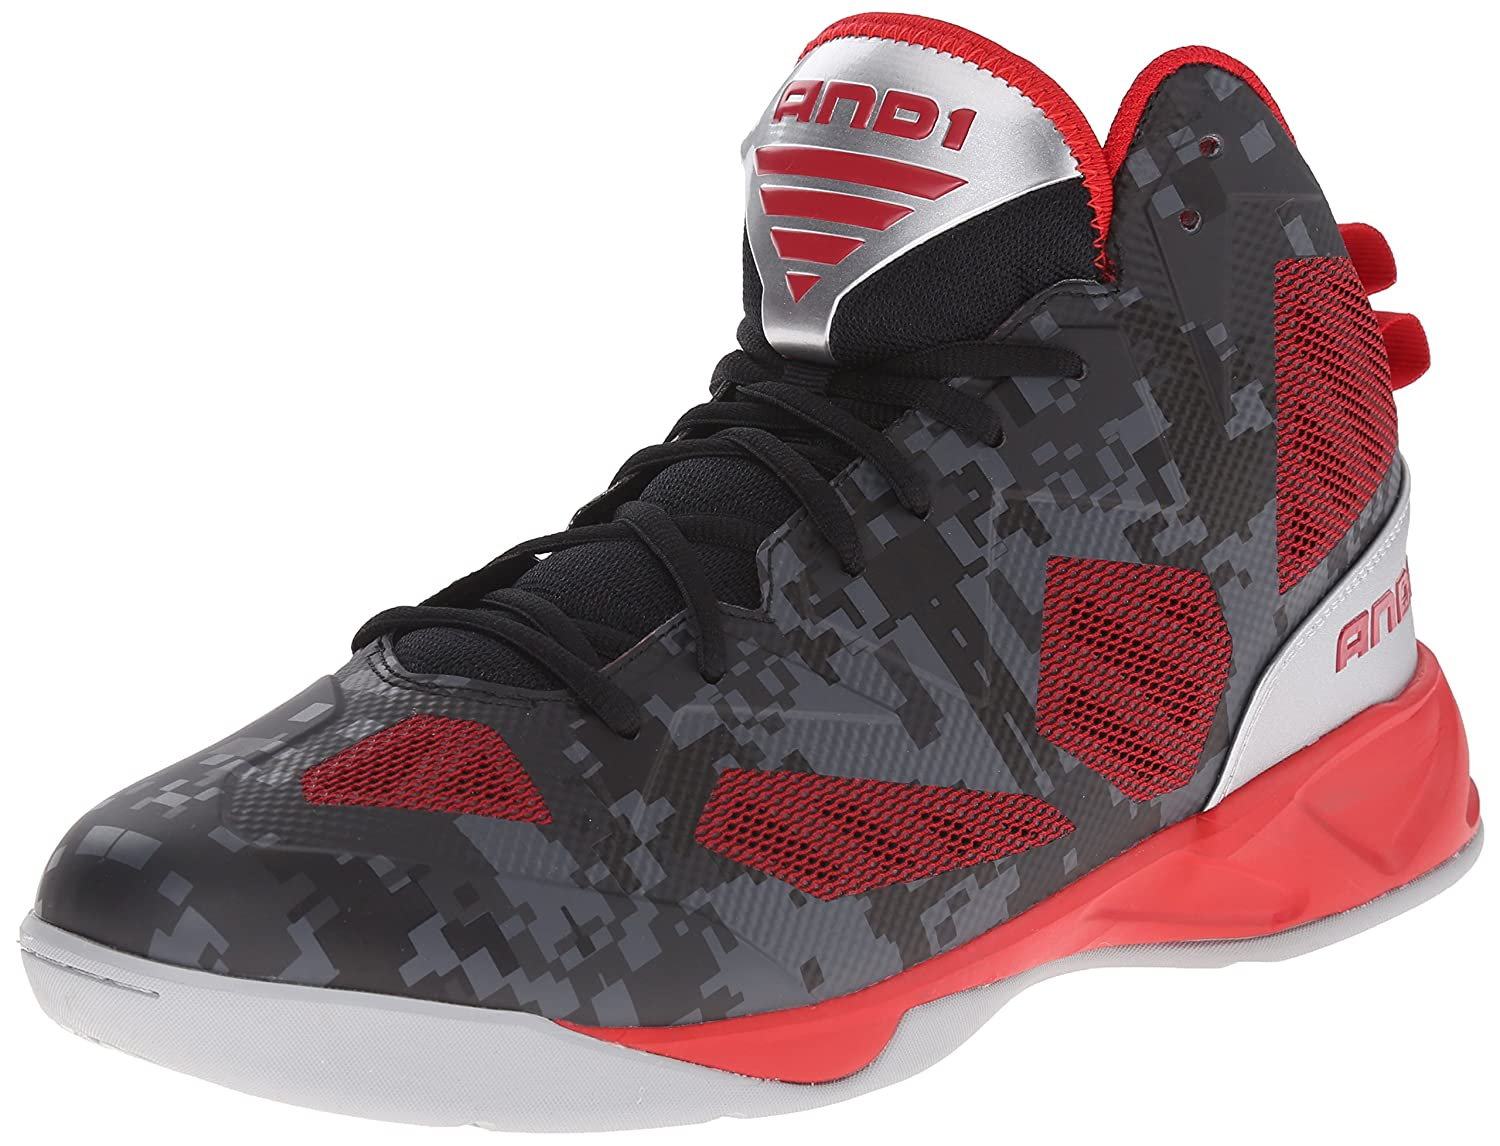 AND1 Men's Xcelerate 2 Basketball Shoe B00T3IXTE4 7 D(M) US|Black/F1 Red/Silver